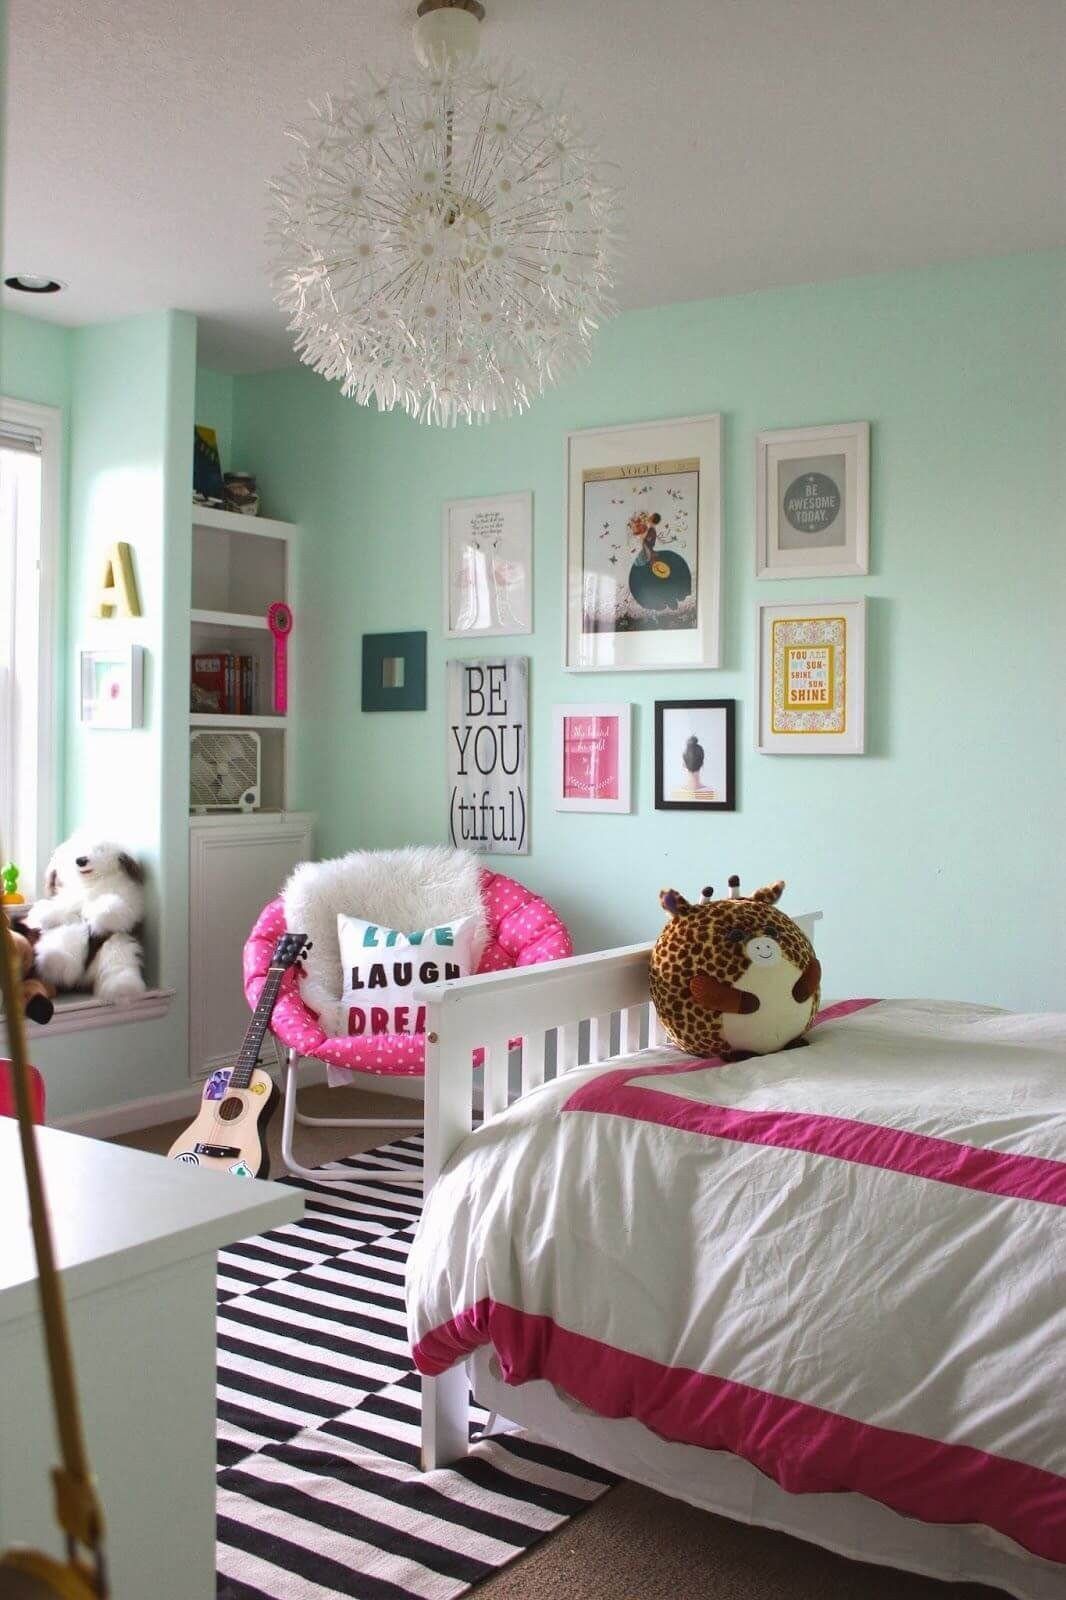 Little Girls Bedroom Ideas Elegant Teenage Girl Bedroom Ideas for A Teenage Girl or Girls May